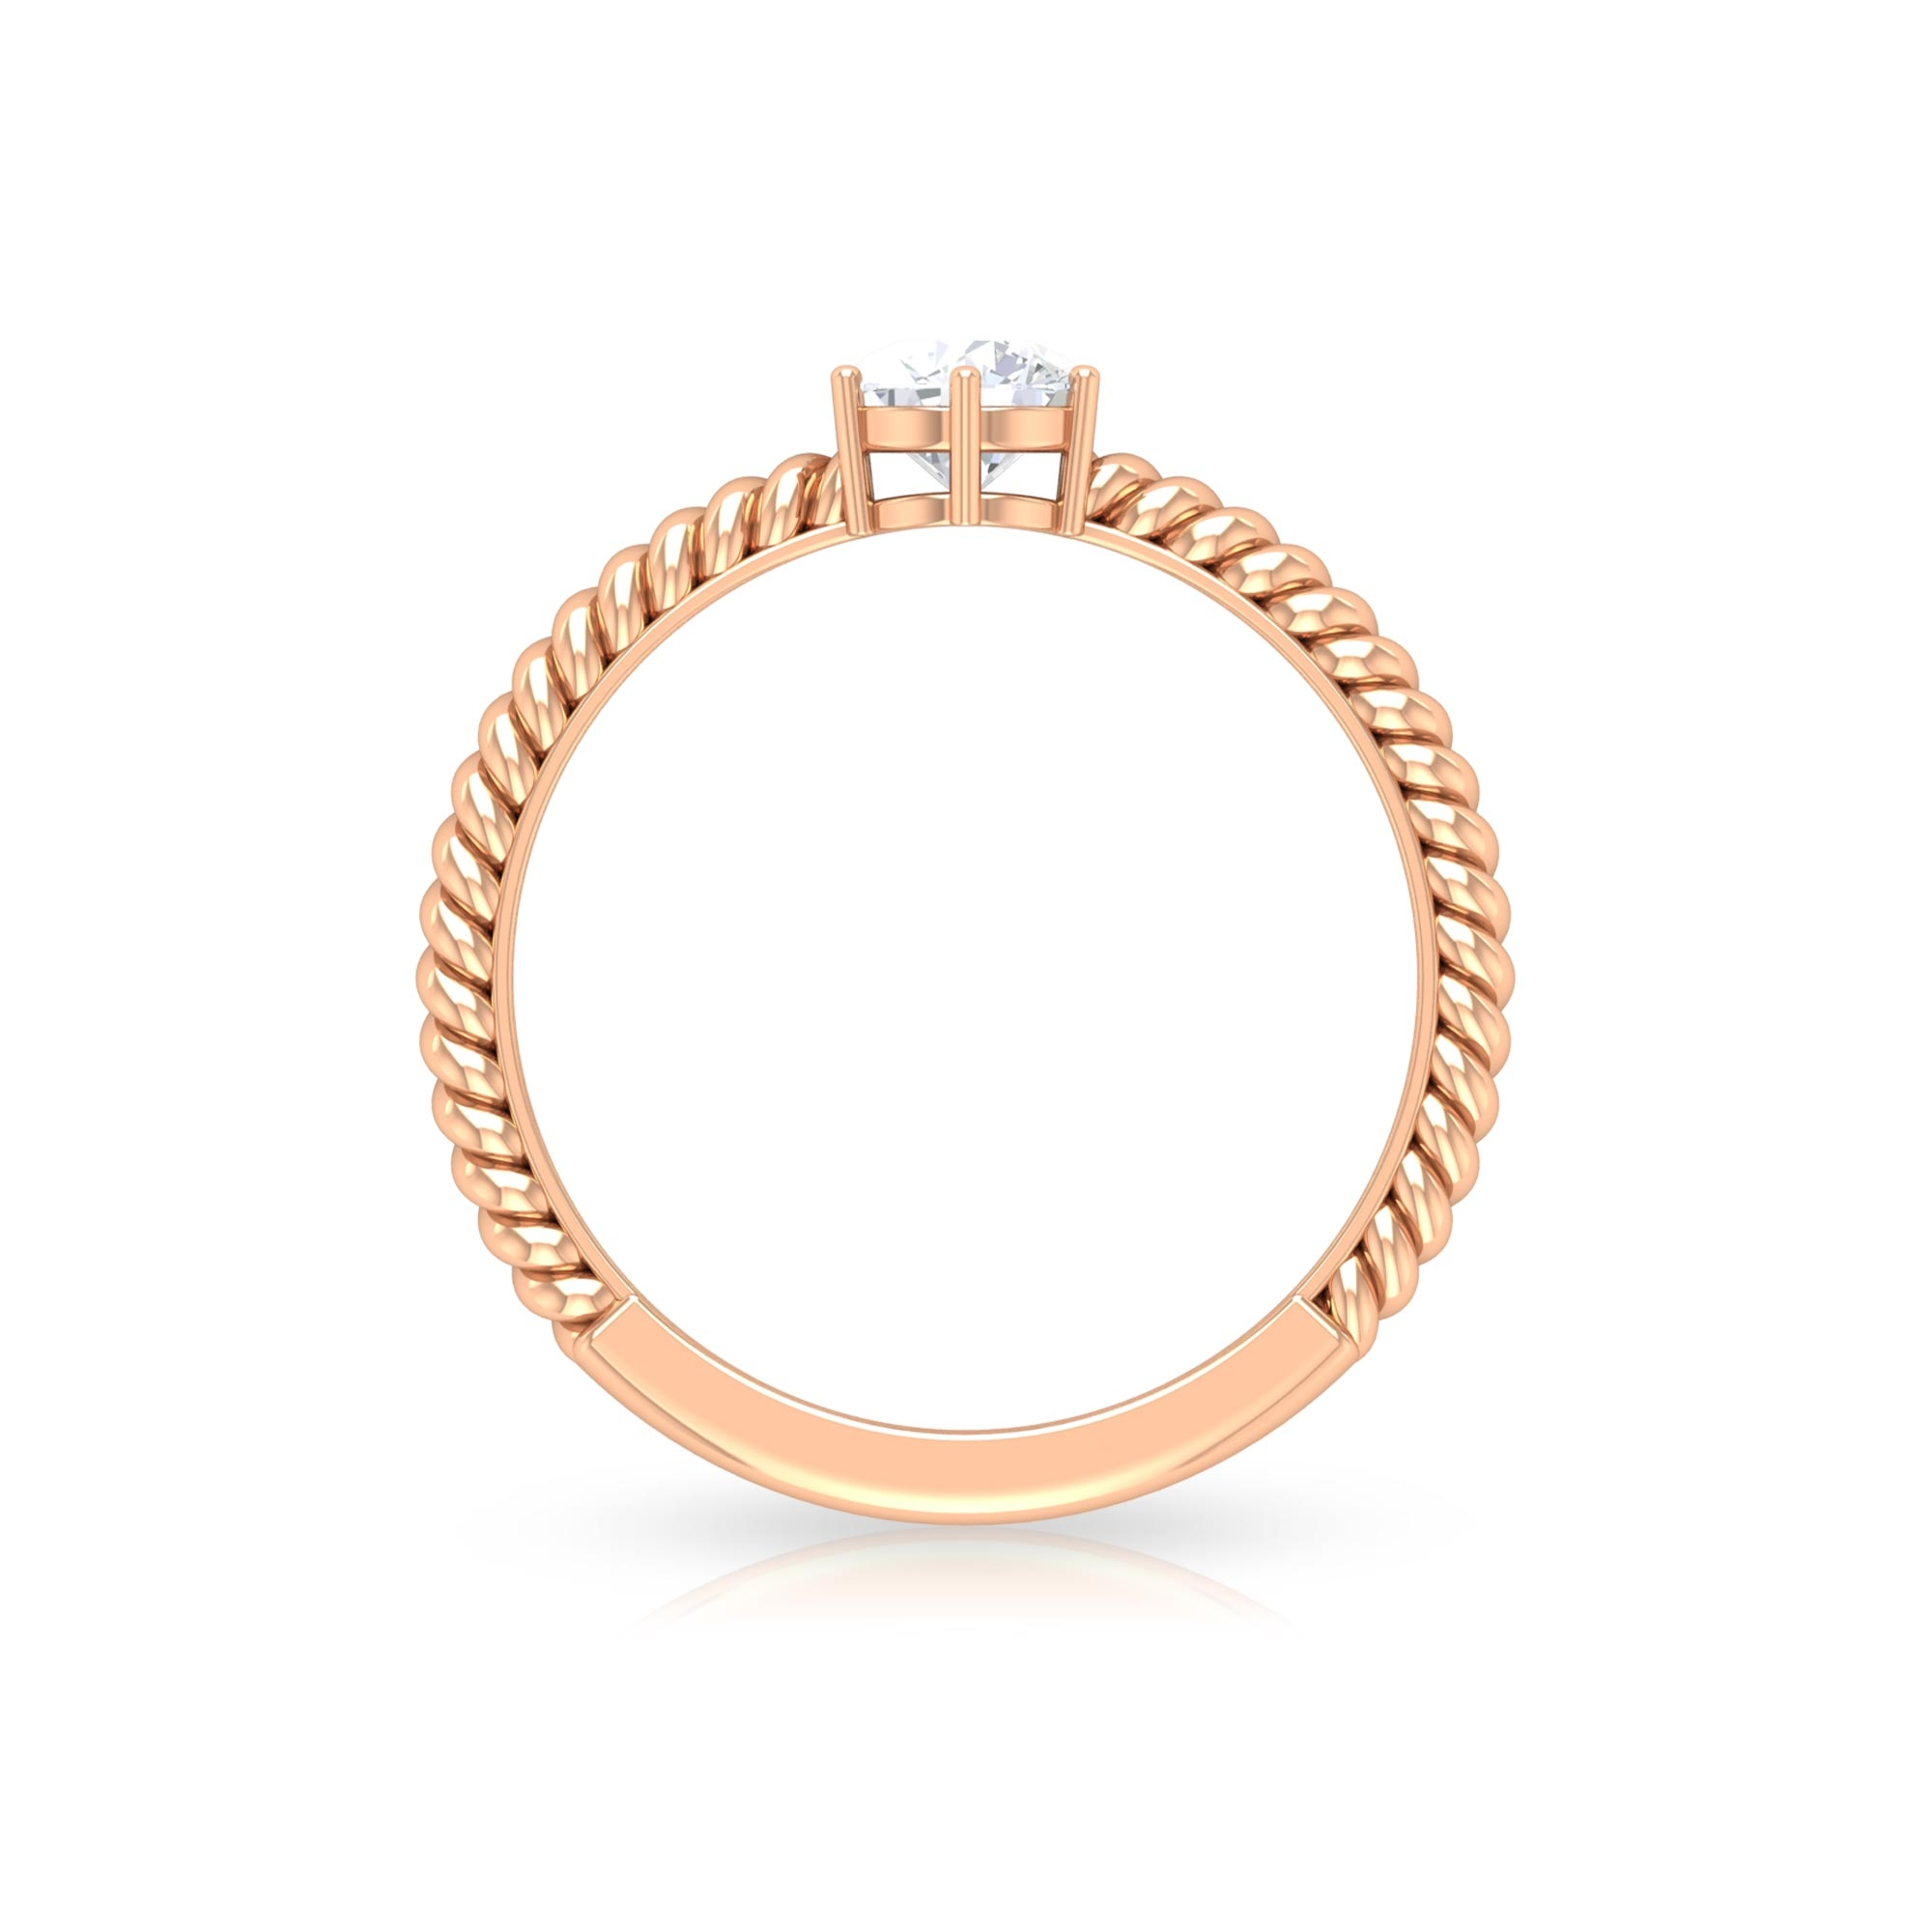 5 MM Round Cut Diamond Solitaire Ring in 6 Prong Setting with Twisted Rope Details